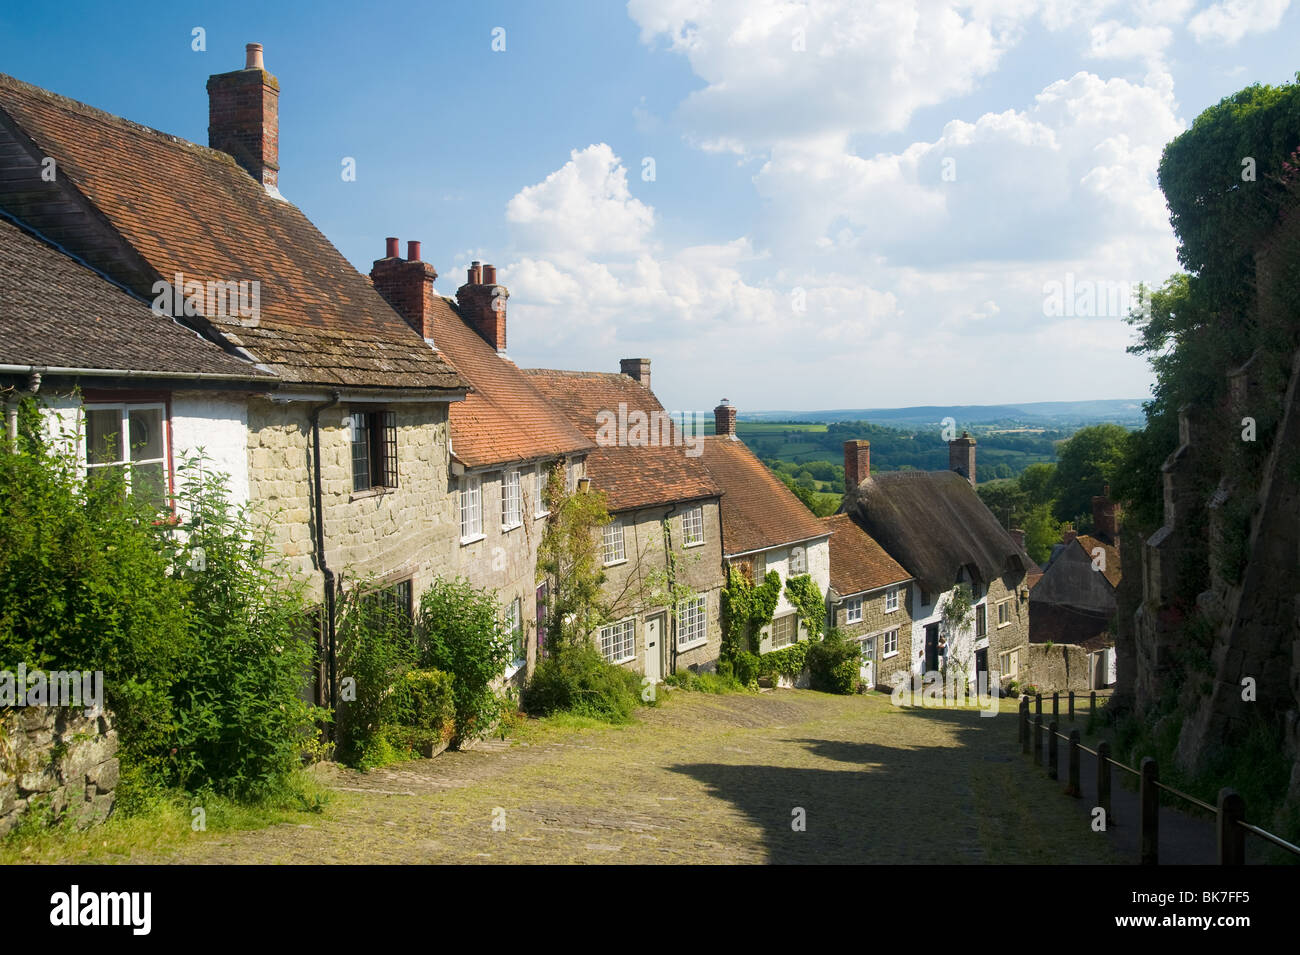 Gold hill in shaftesbury - Stock Image